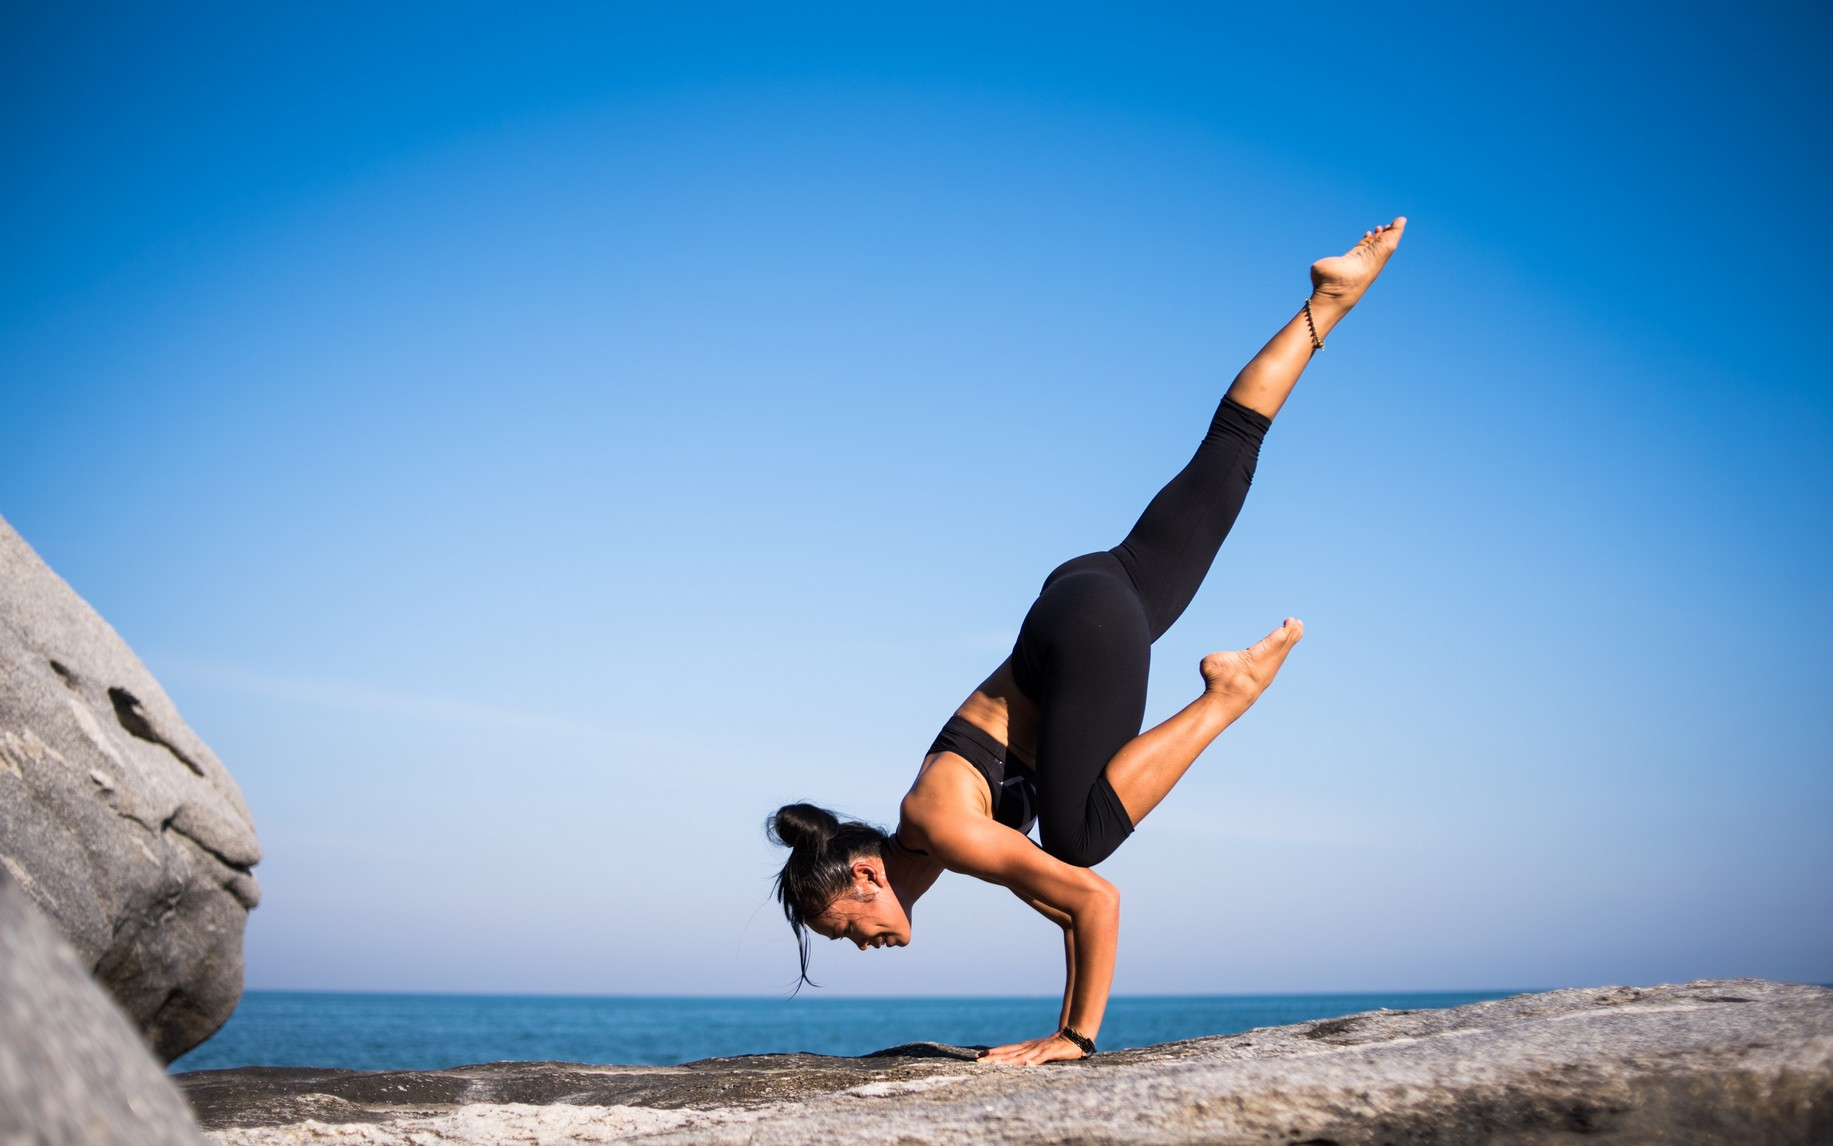 woman in yoga pose, on a large rock, with a bright blue sky and sea behind her.